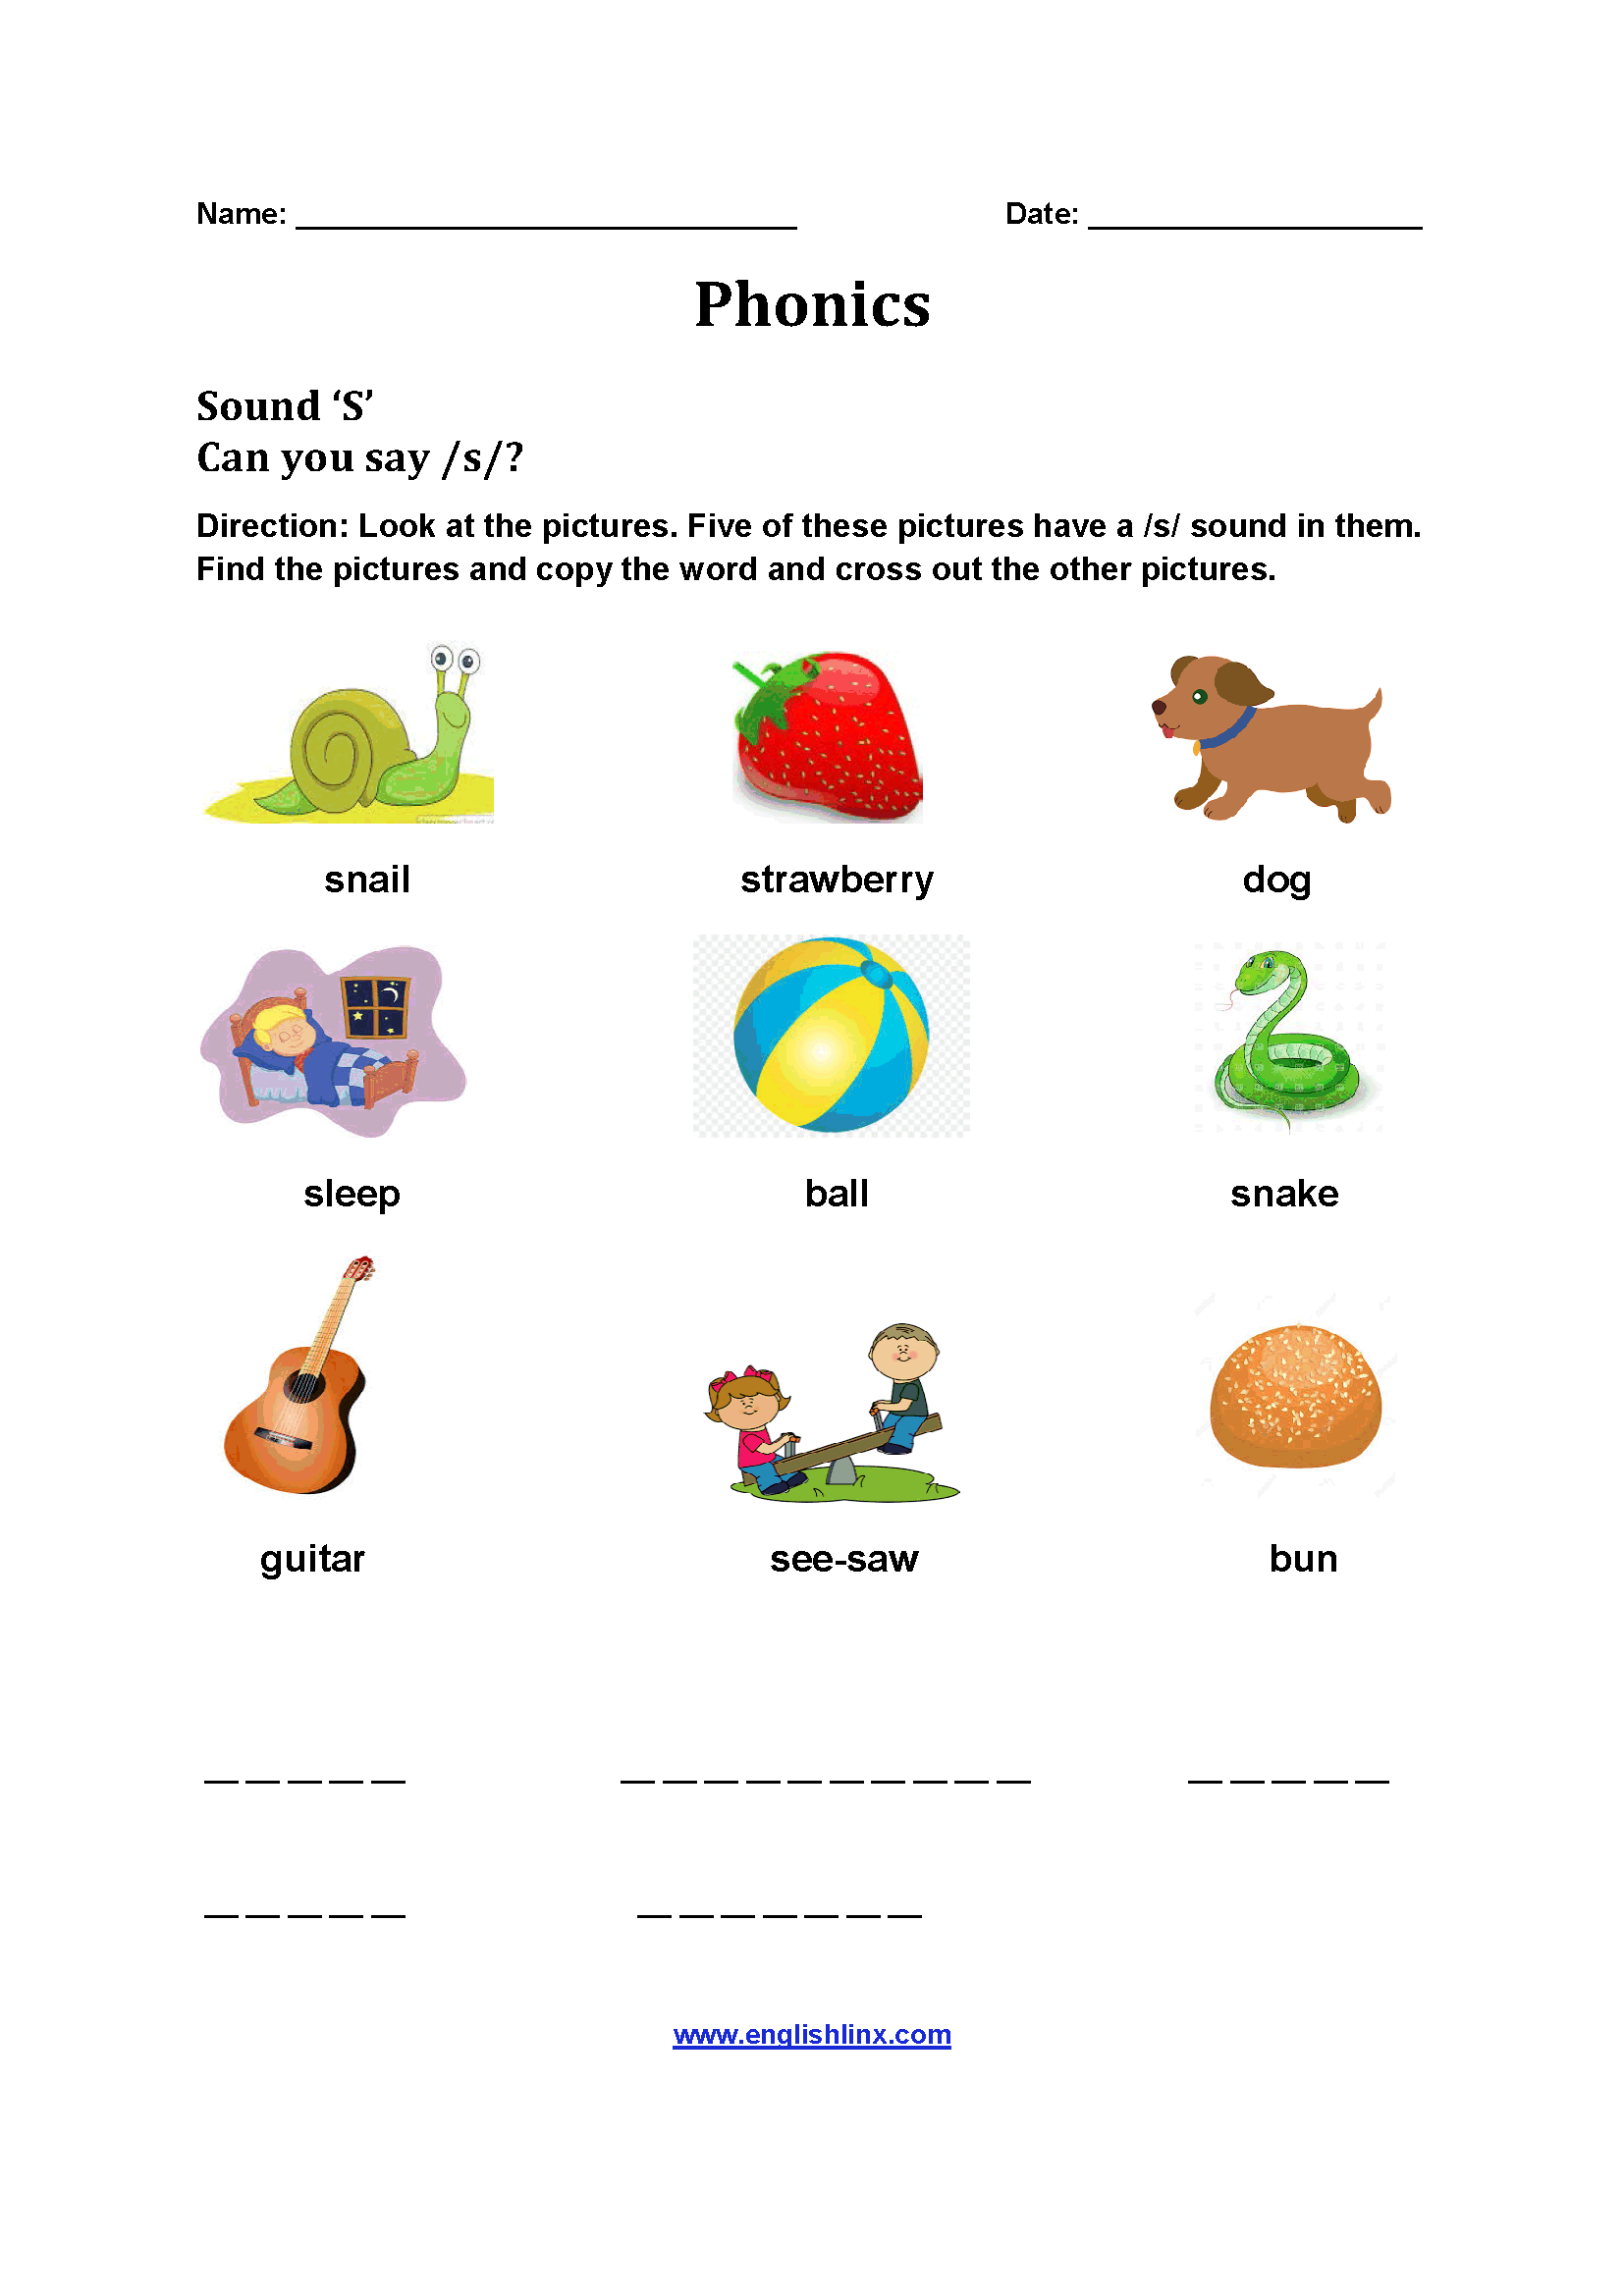 Sound S Phonics Worksheet on printable english worksheets 6th grade